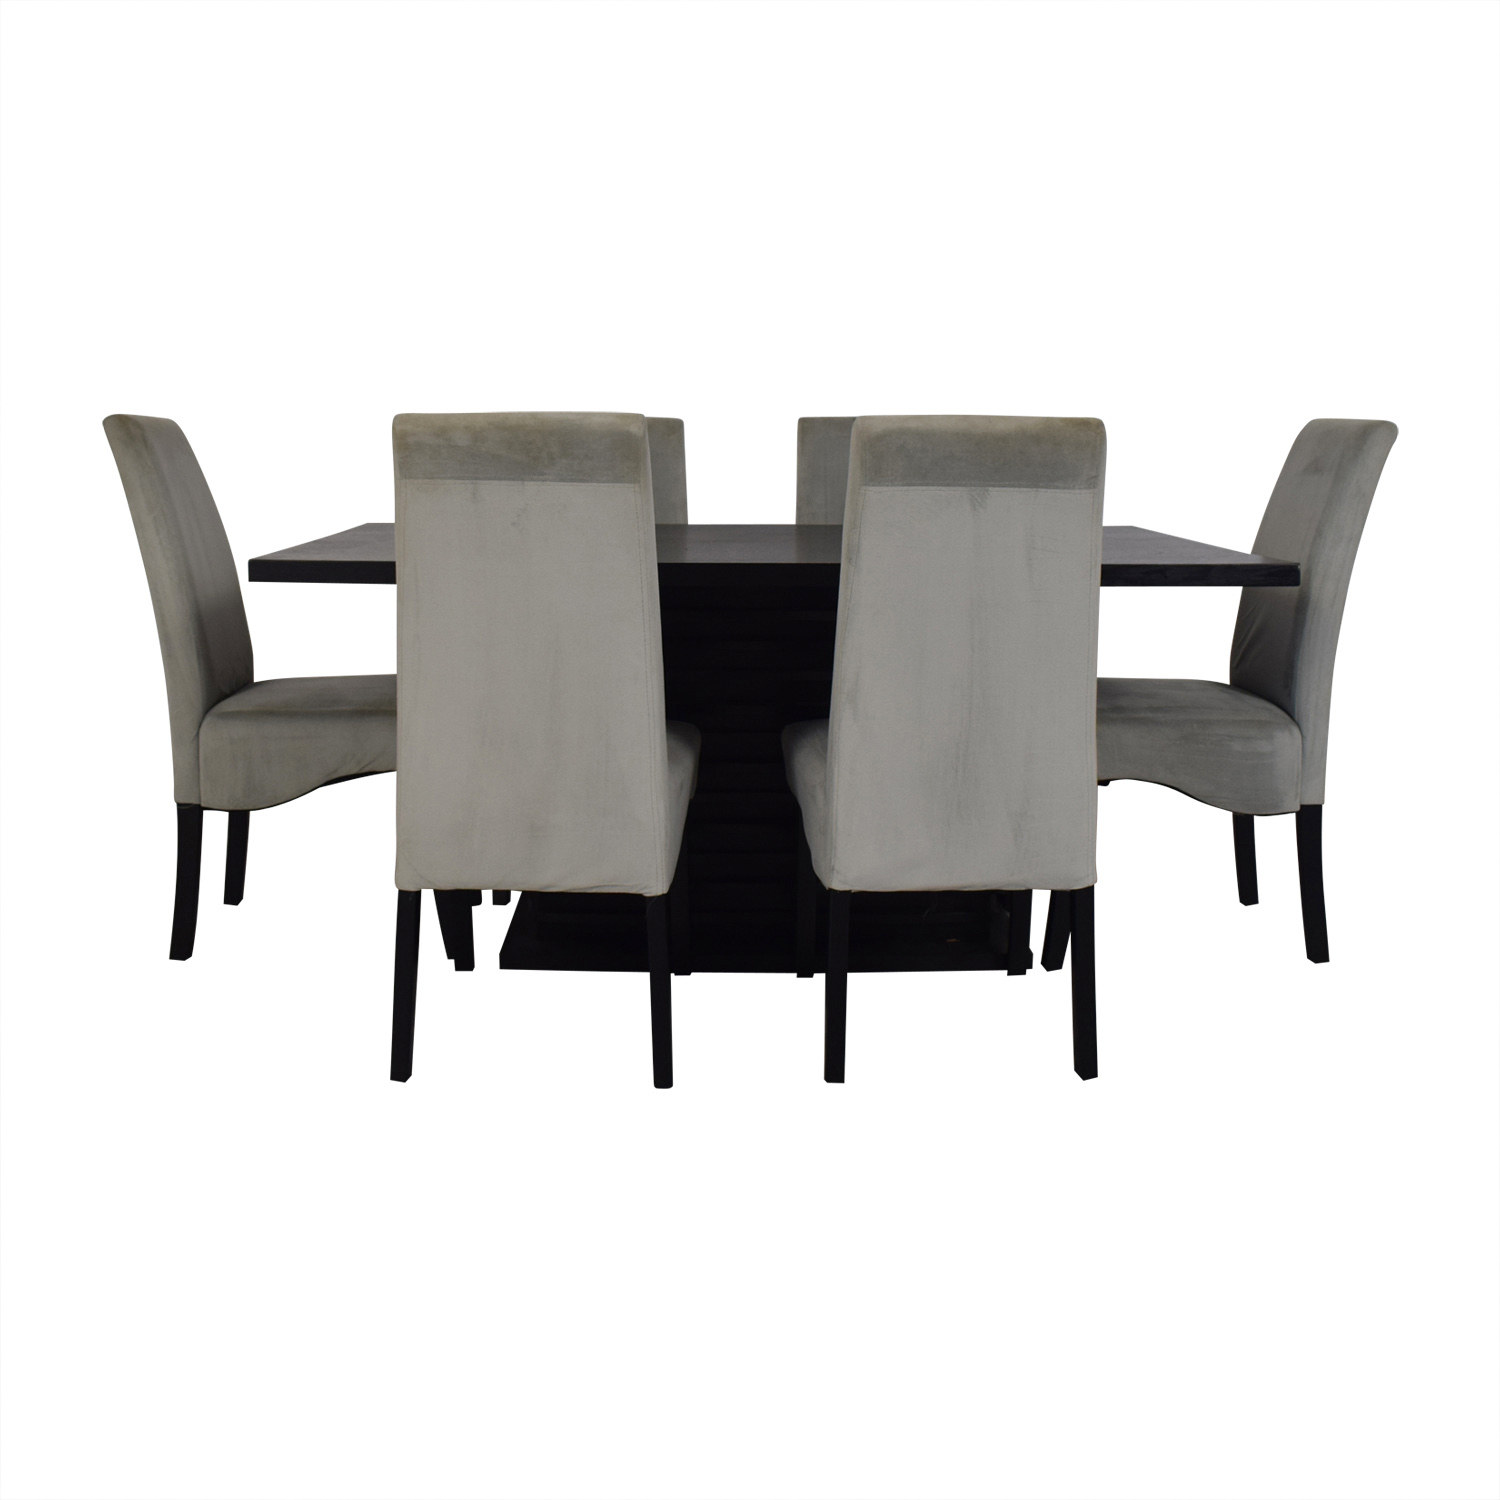 Coaster Furniture Coaster Furniture Stanton Gray Dining Room Set used